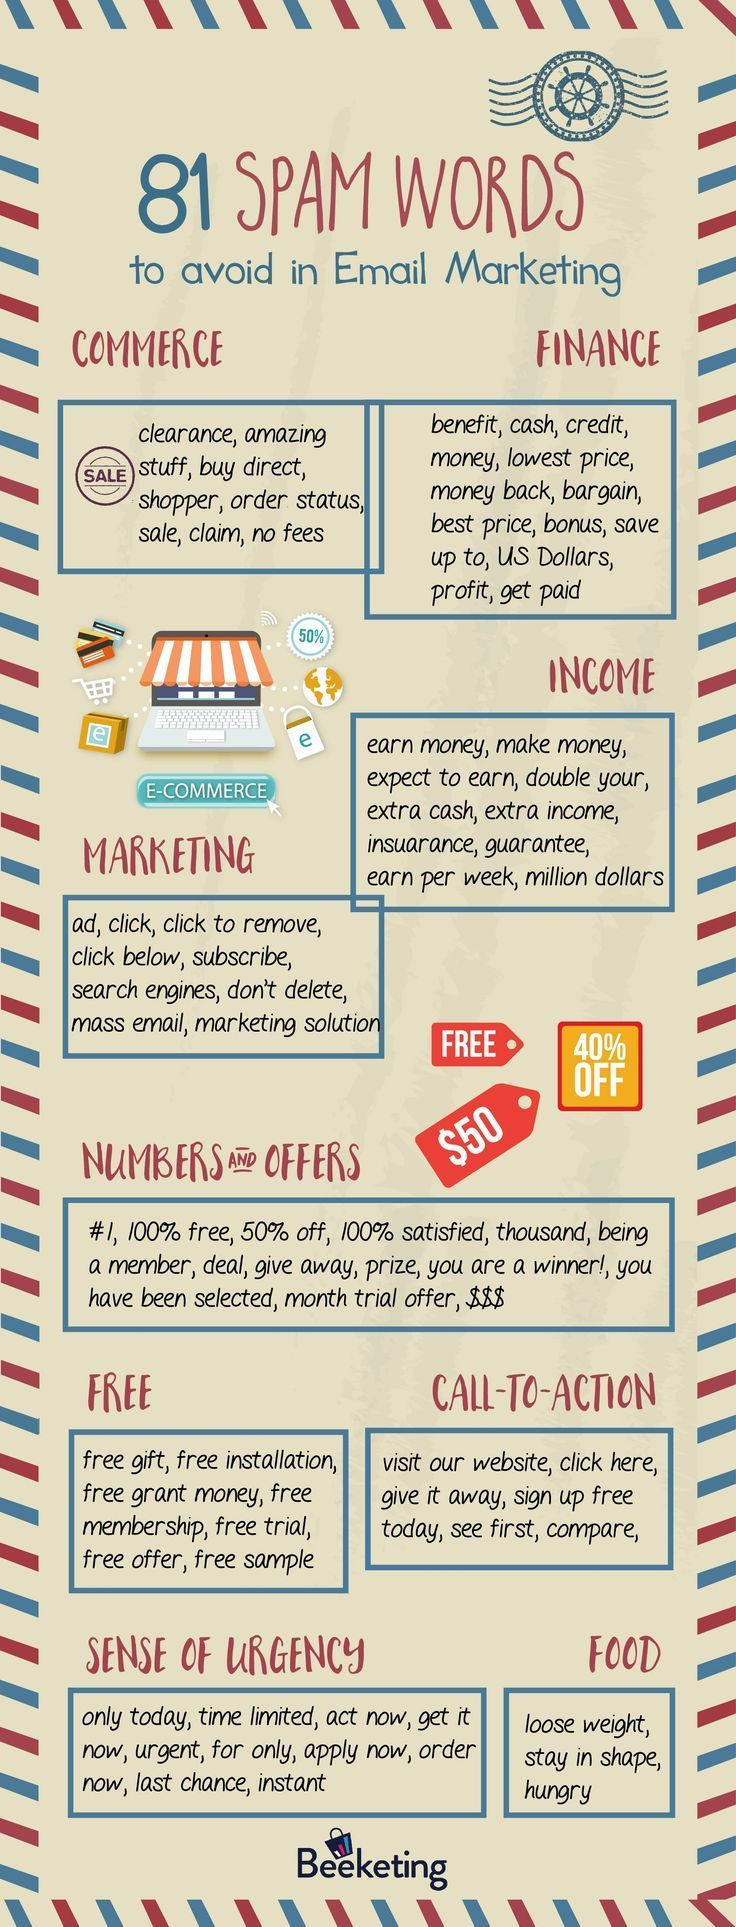 This is an infographic of 81 spam words highly vulnerable to spam filters that…